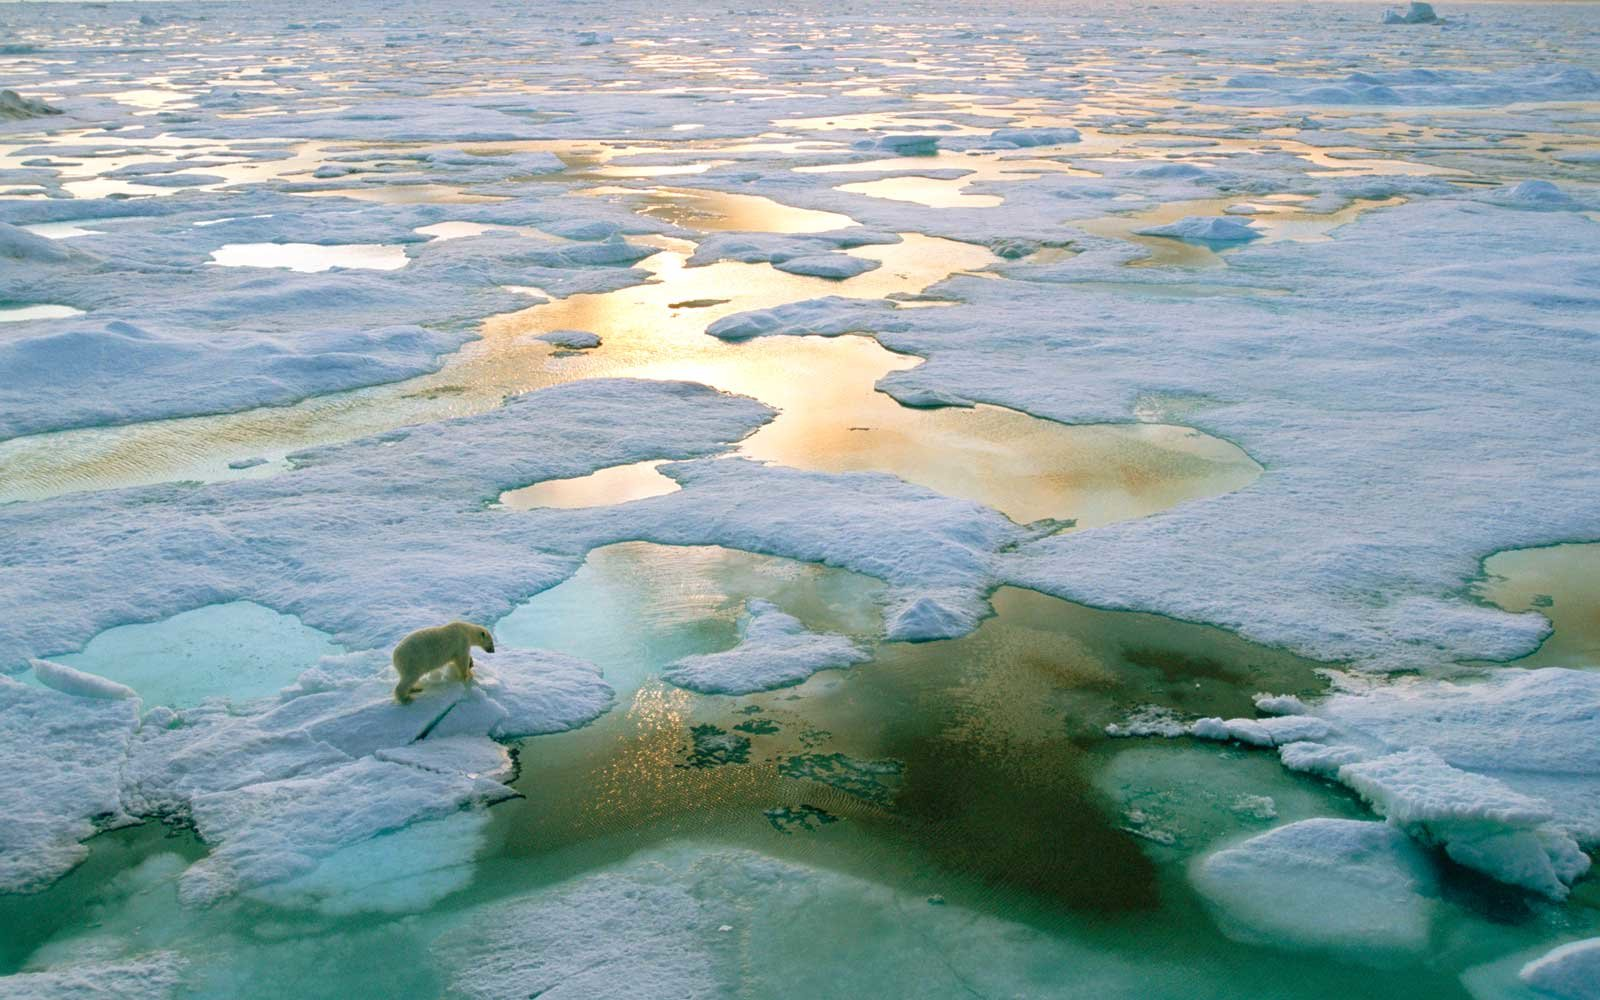 A Polar Bear crosses sea ice pools in the remote Franz Josef Land area of Russia